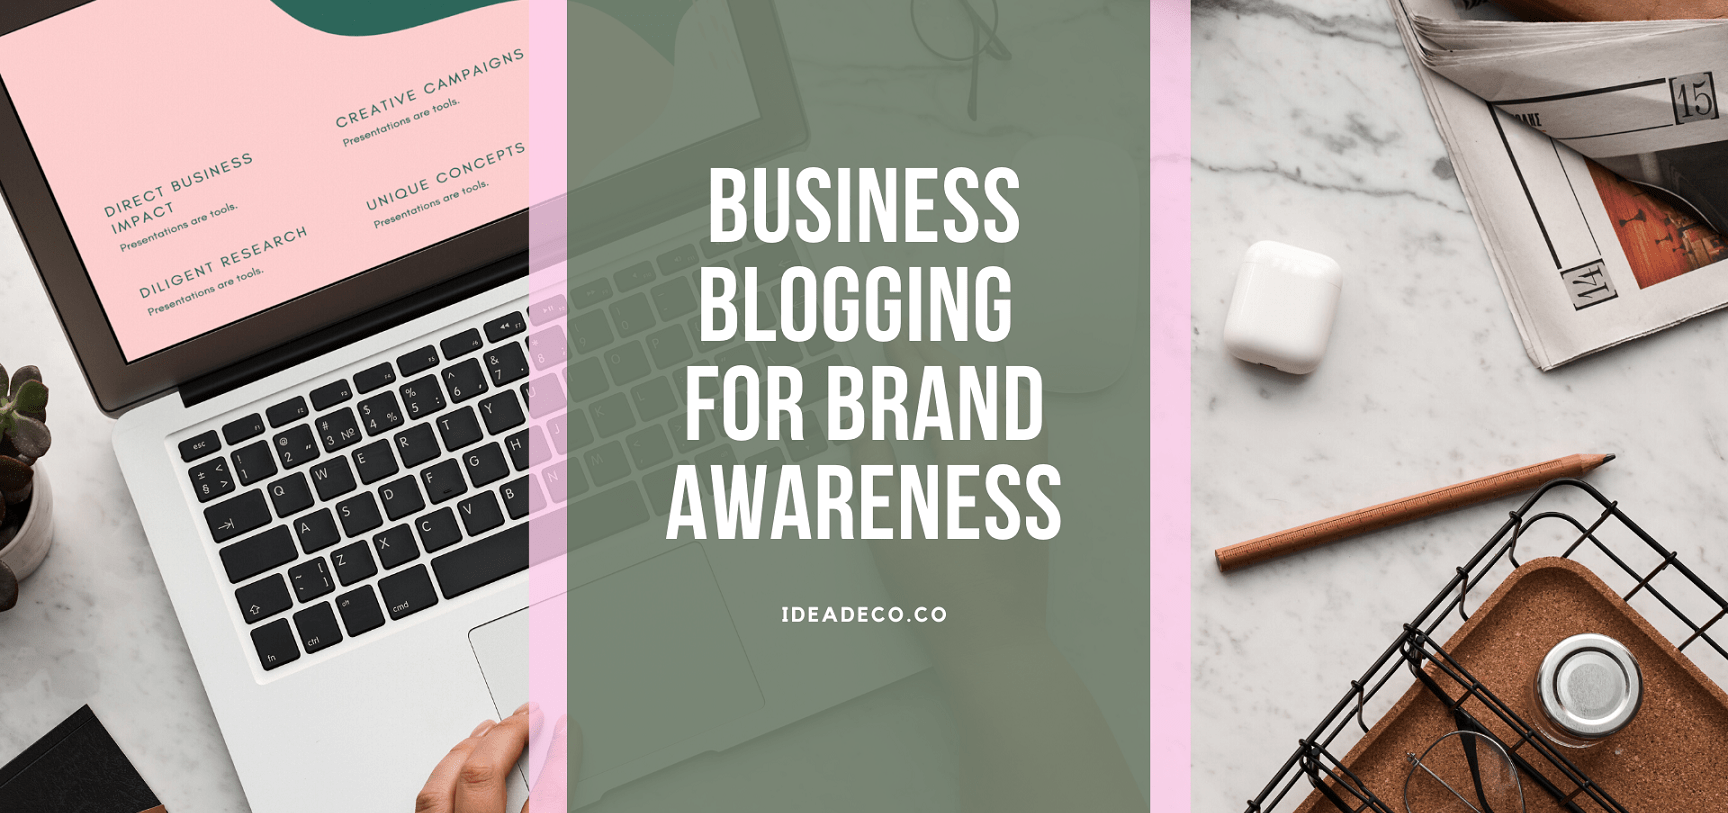 Business Blogging for Brand Awareness